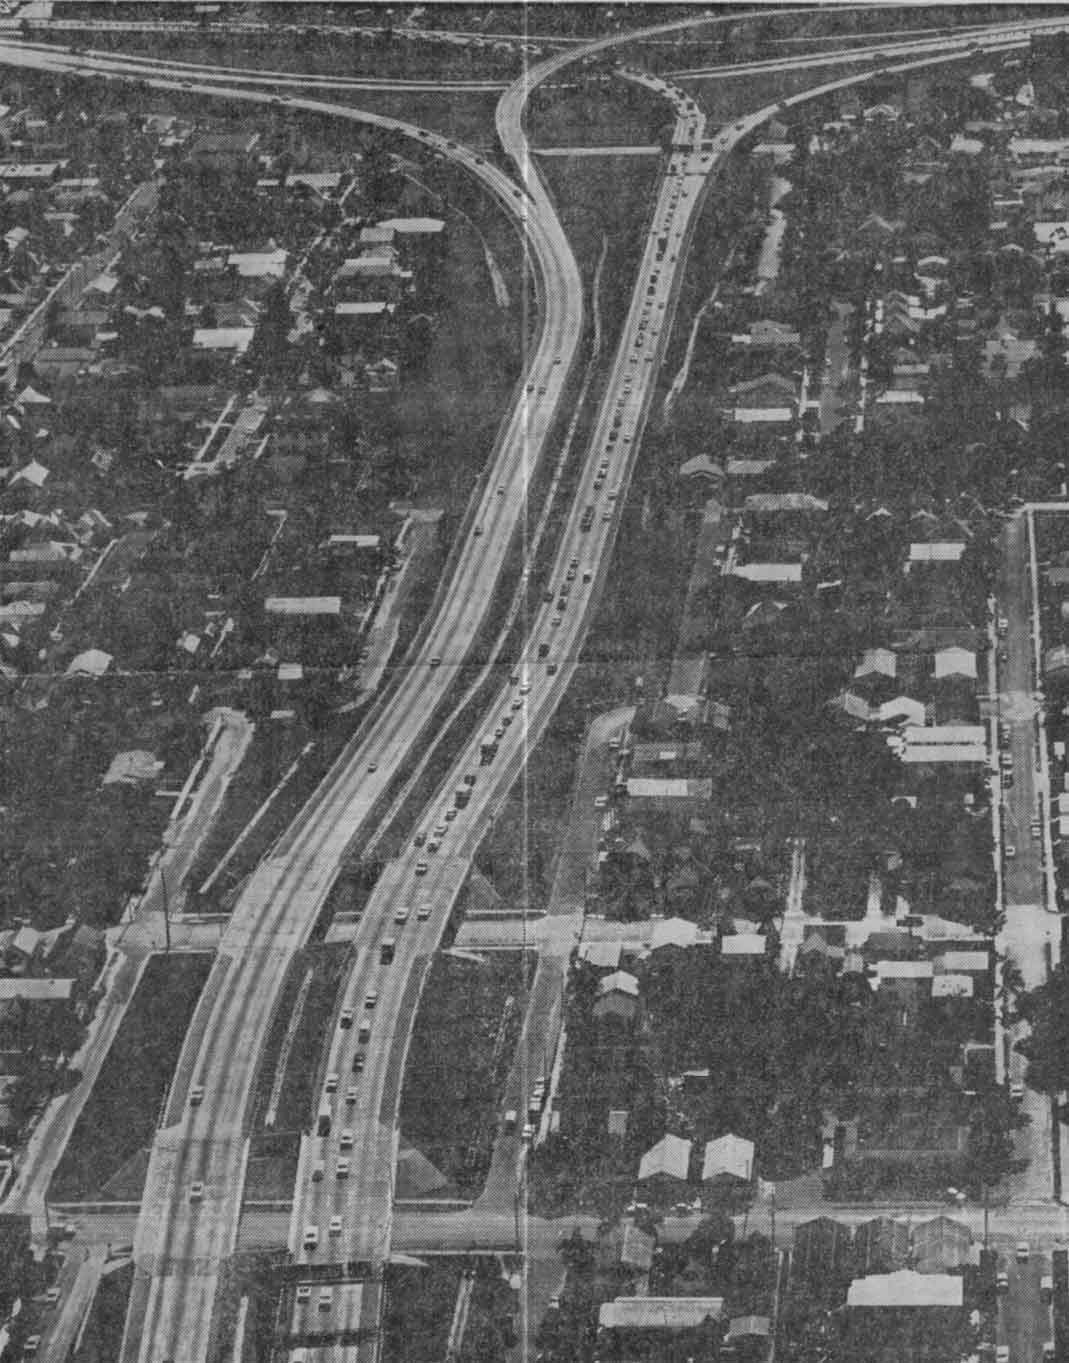 Downtown Interchange (I-4 at I-275) in 1970